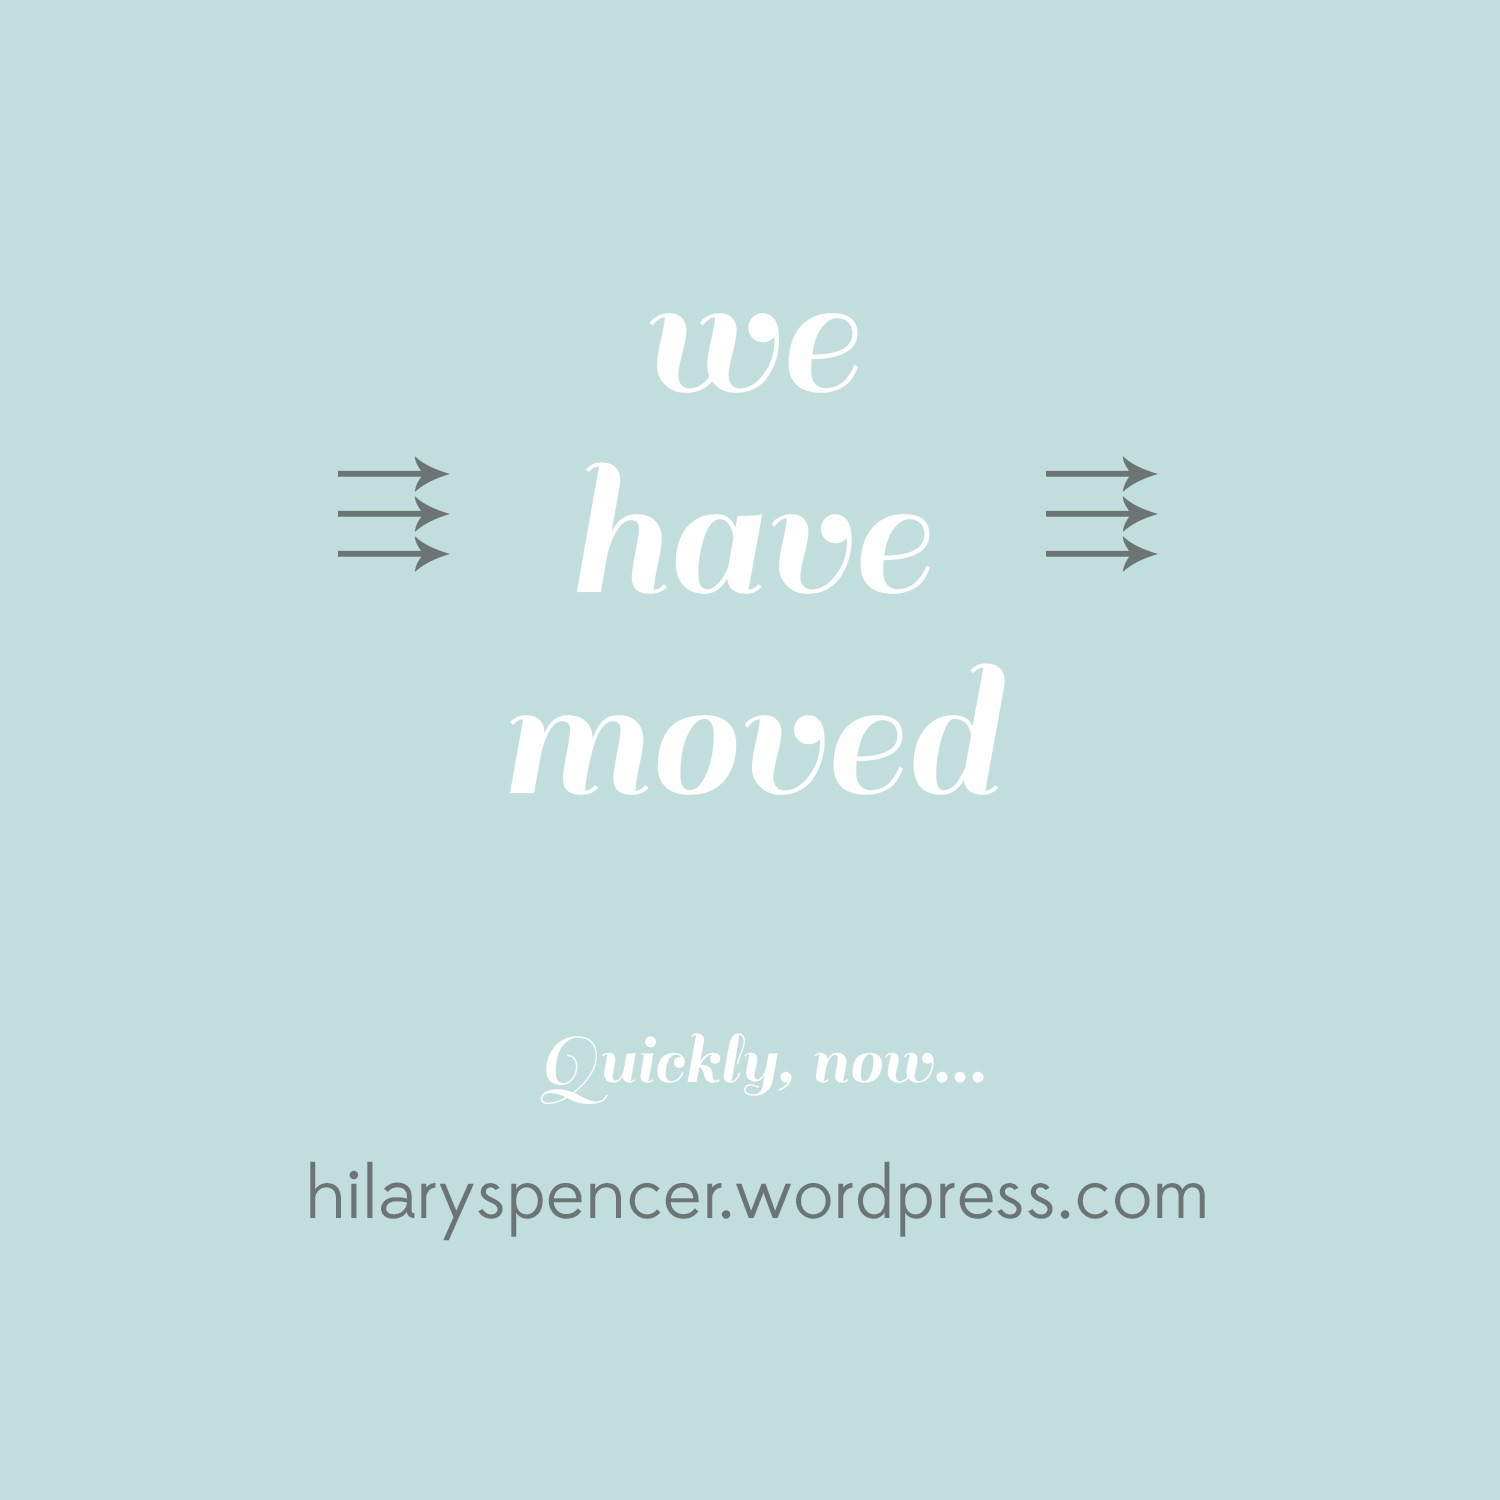 http://hilaryspencer.wordpress.com